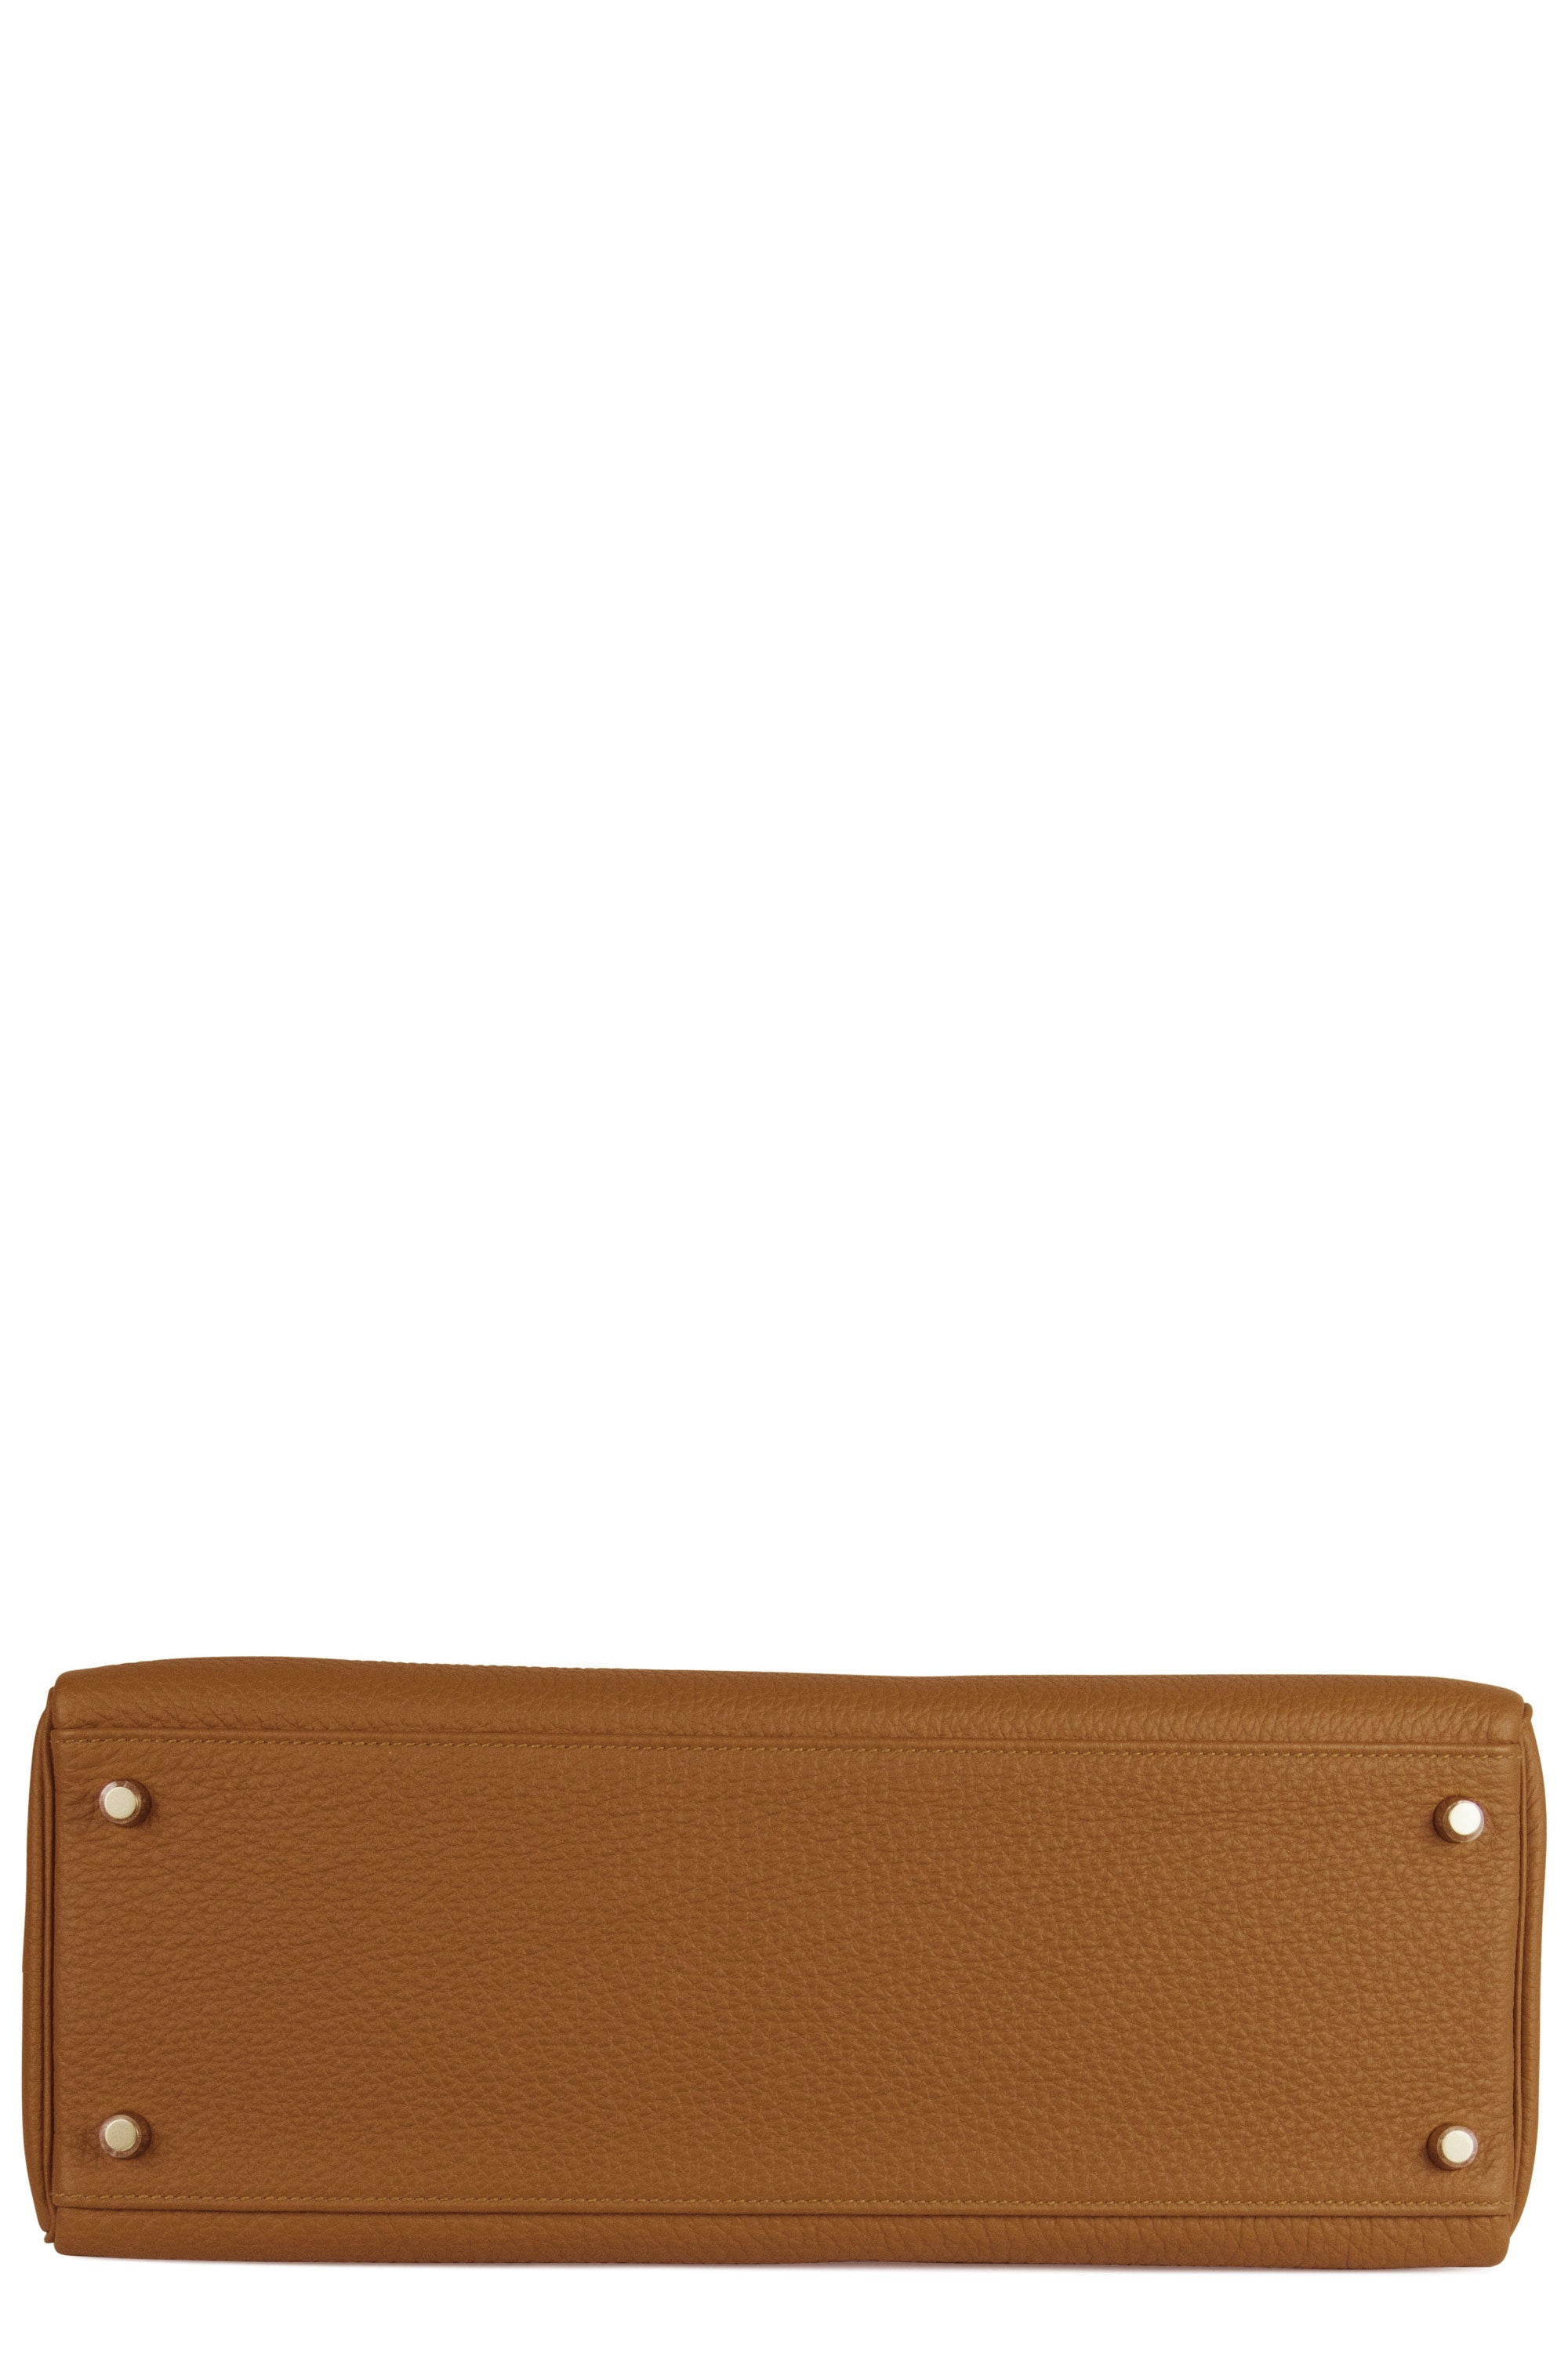 HERMÈS Kelly 35 Caramel Togo Leather